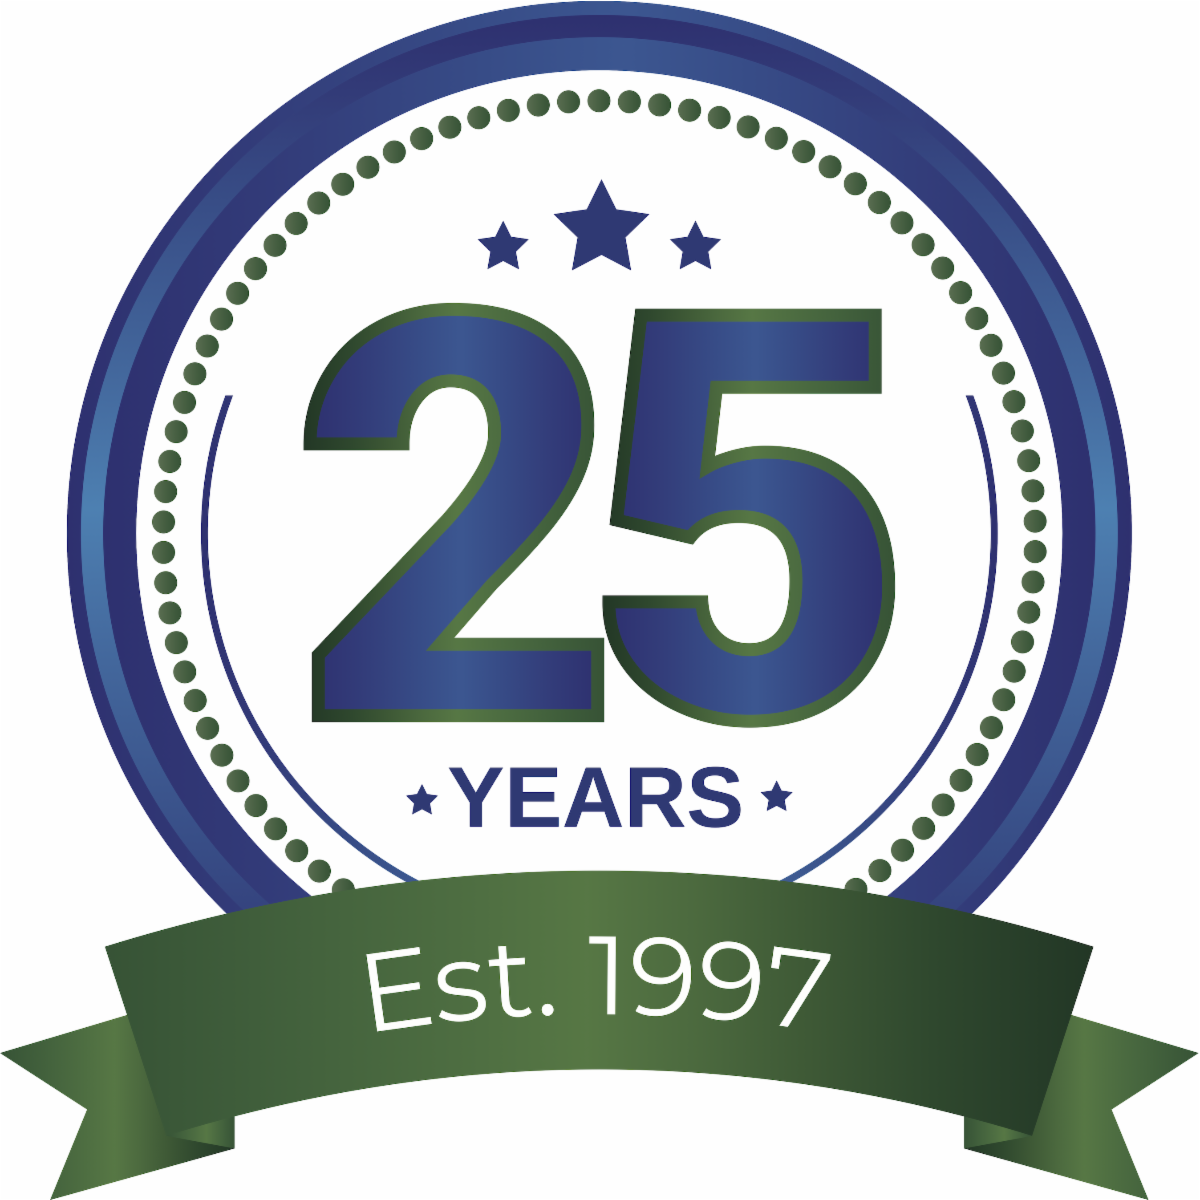 FIRST's 25th Anniversary